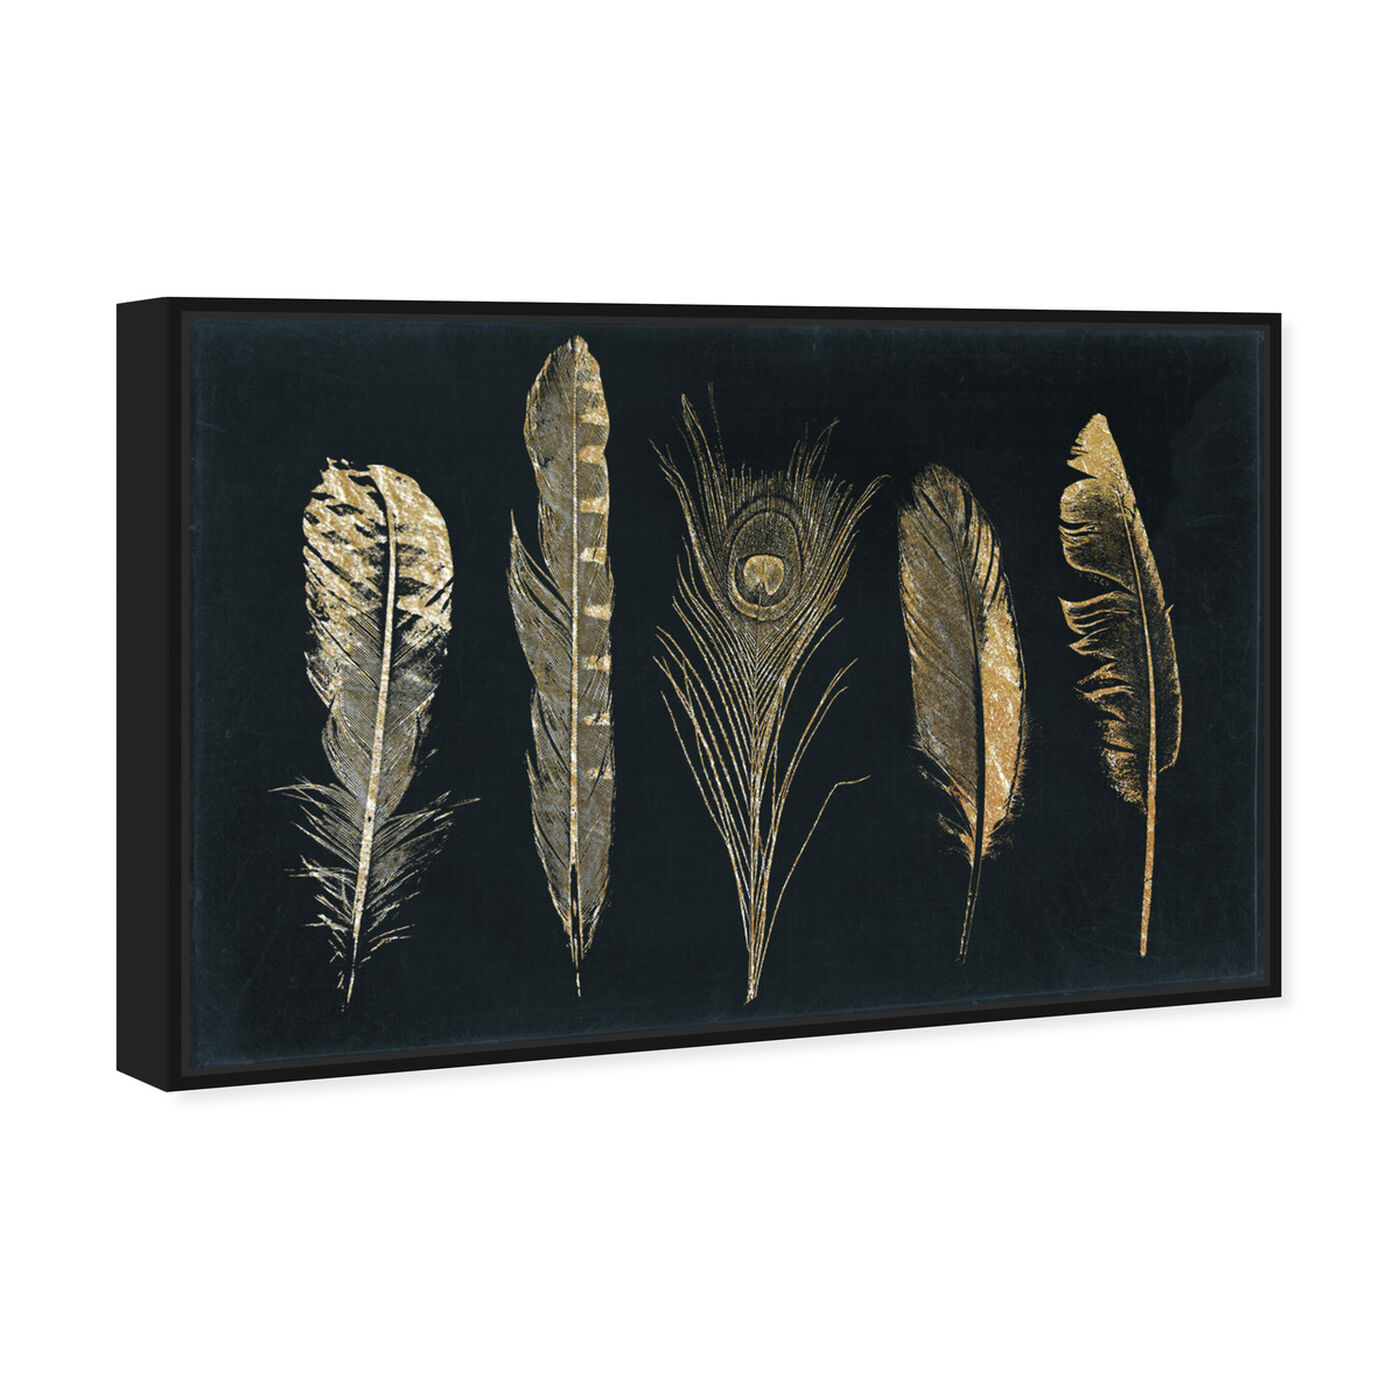 Angled view of Corinthian Feathers - Signature Collection featuring fashion and glam and feathers art.